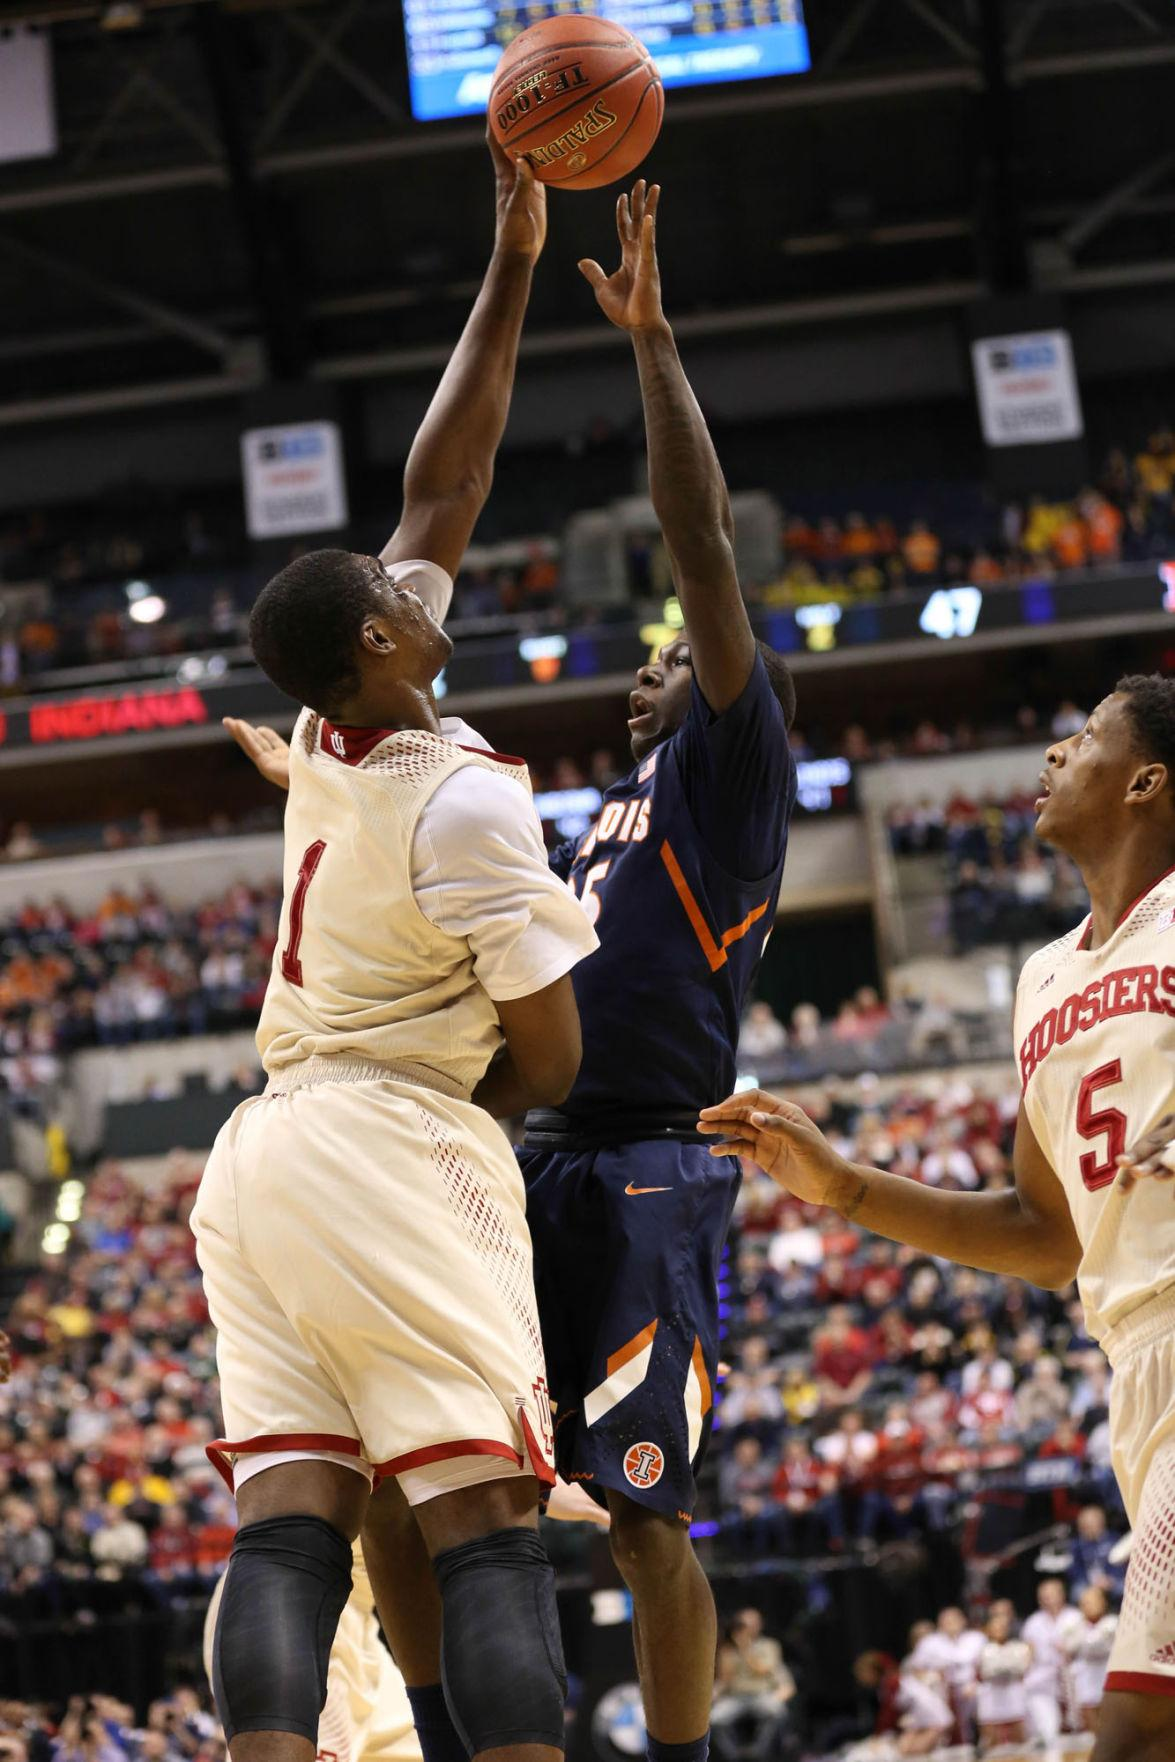 Illinois' Kendrick Nunn will return to the lineup this Friday when the Illini tip off the season against Georgia Southern. The sophomore guard missed the team's lone exhibition game last Friday.